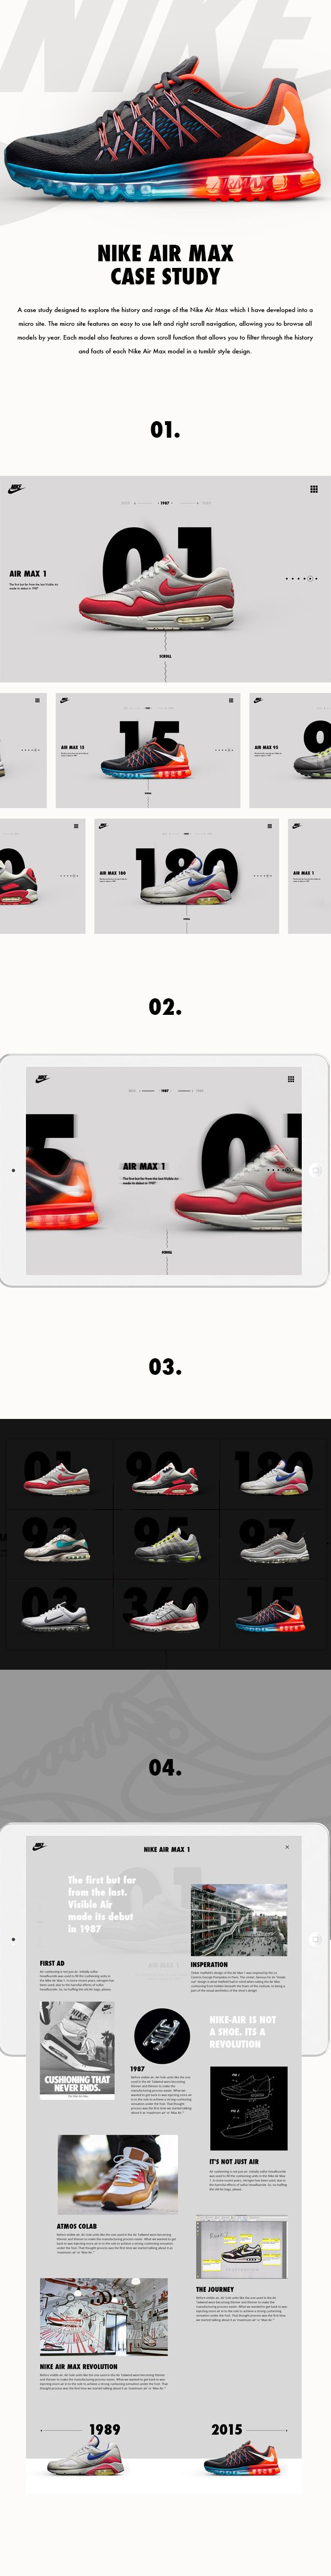 Nike Air Max Case Study on Web Design Served